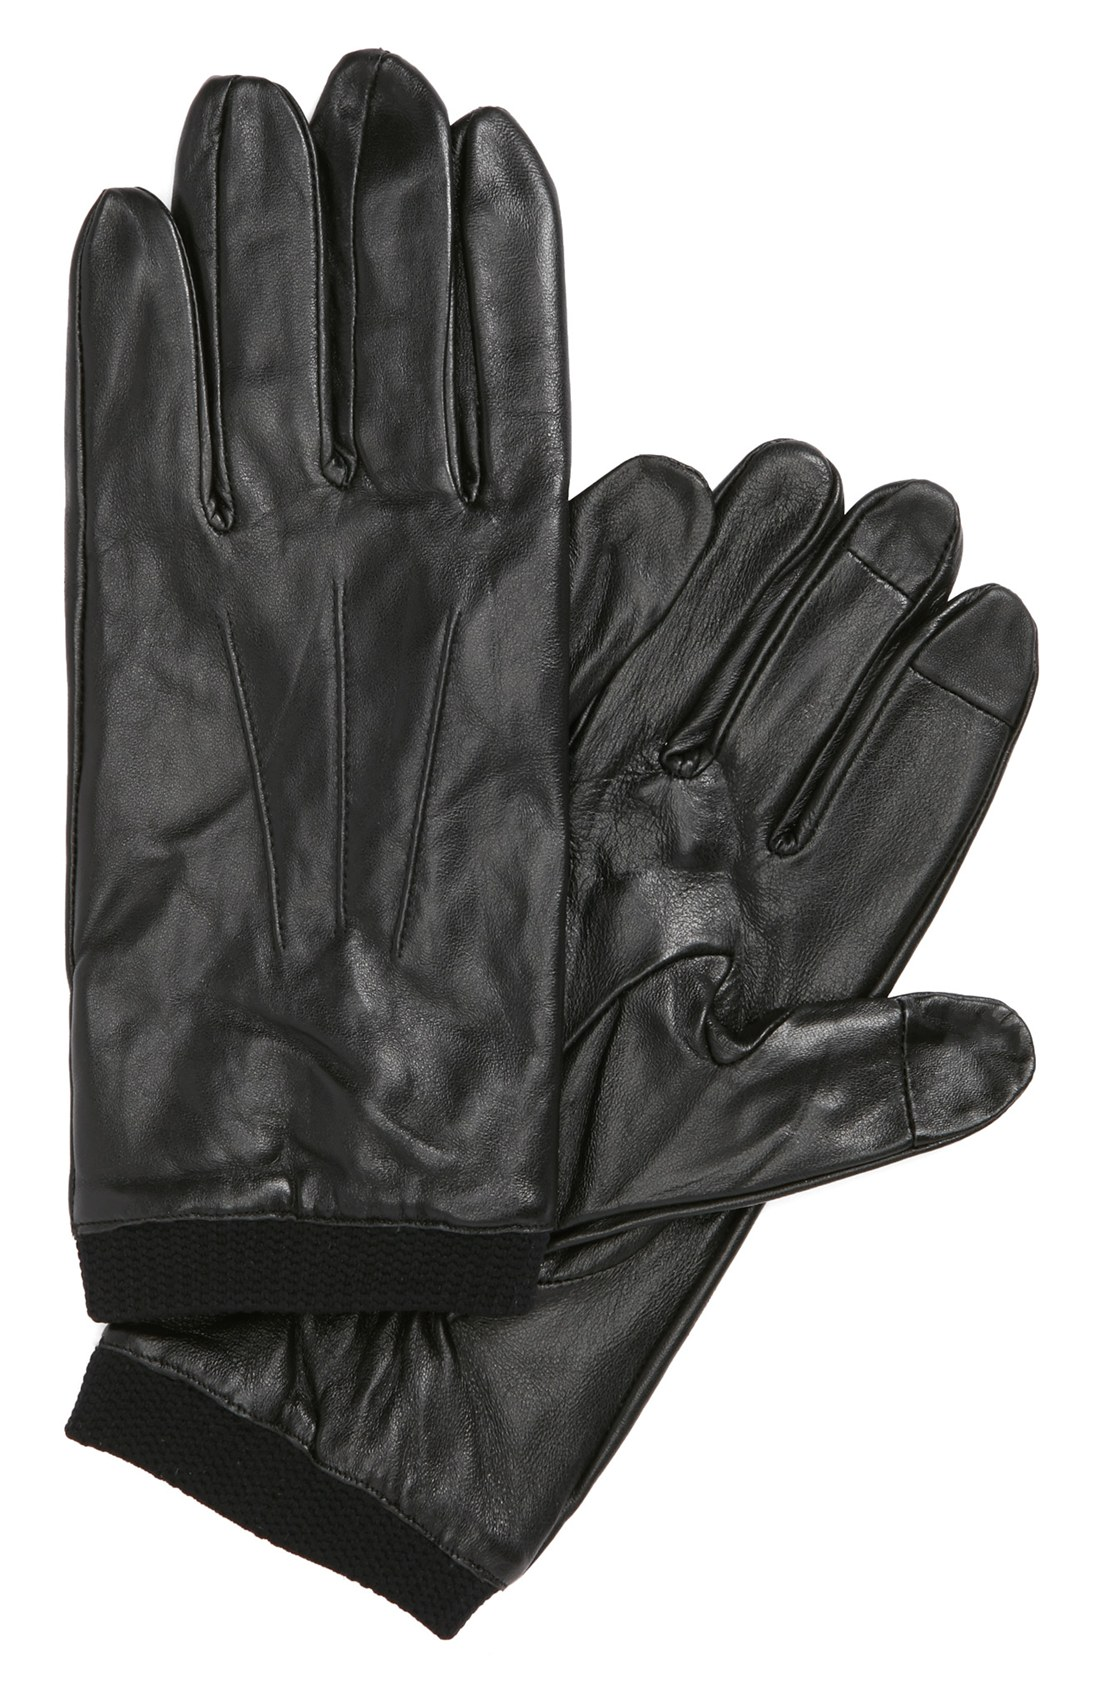 Mens leather gloves topman - Gallery Previously Sold At Nordstrom Men S Leather Gloves